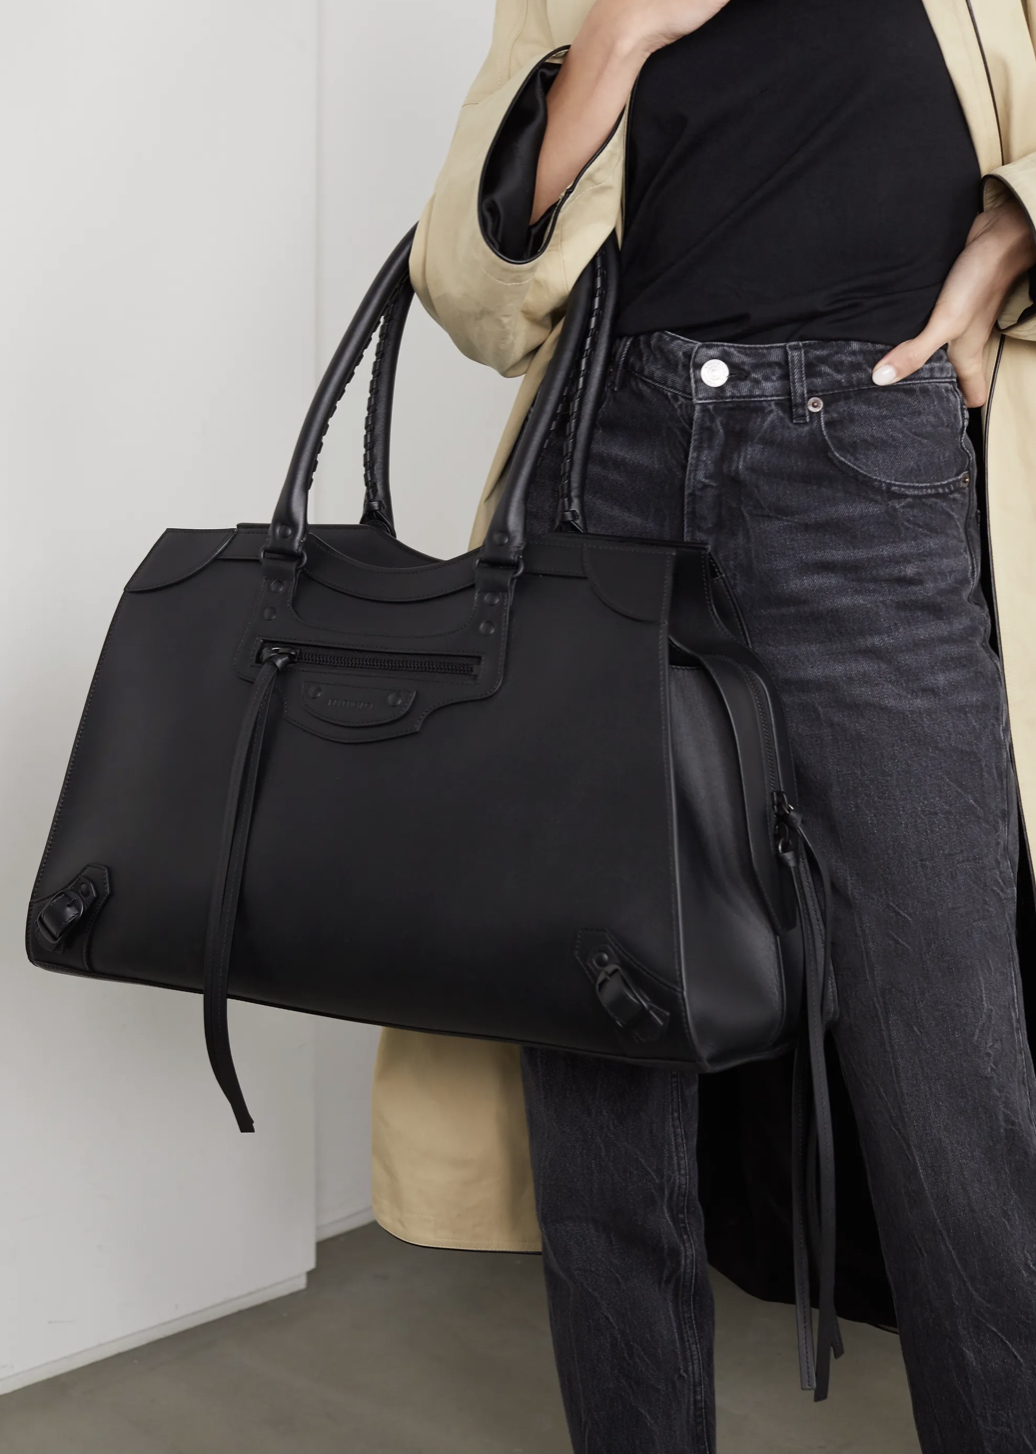 Weekly Finds + Jessica Alba's Holiday Sweats   BALENCIAGA Classic City large leather tote